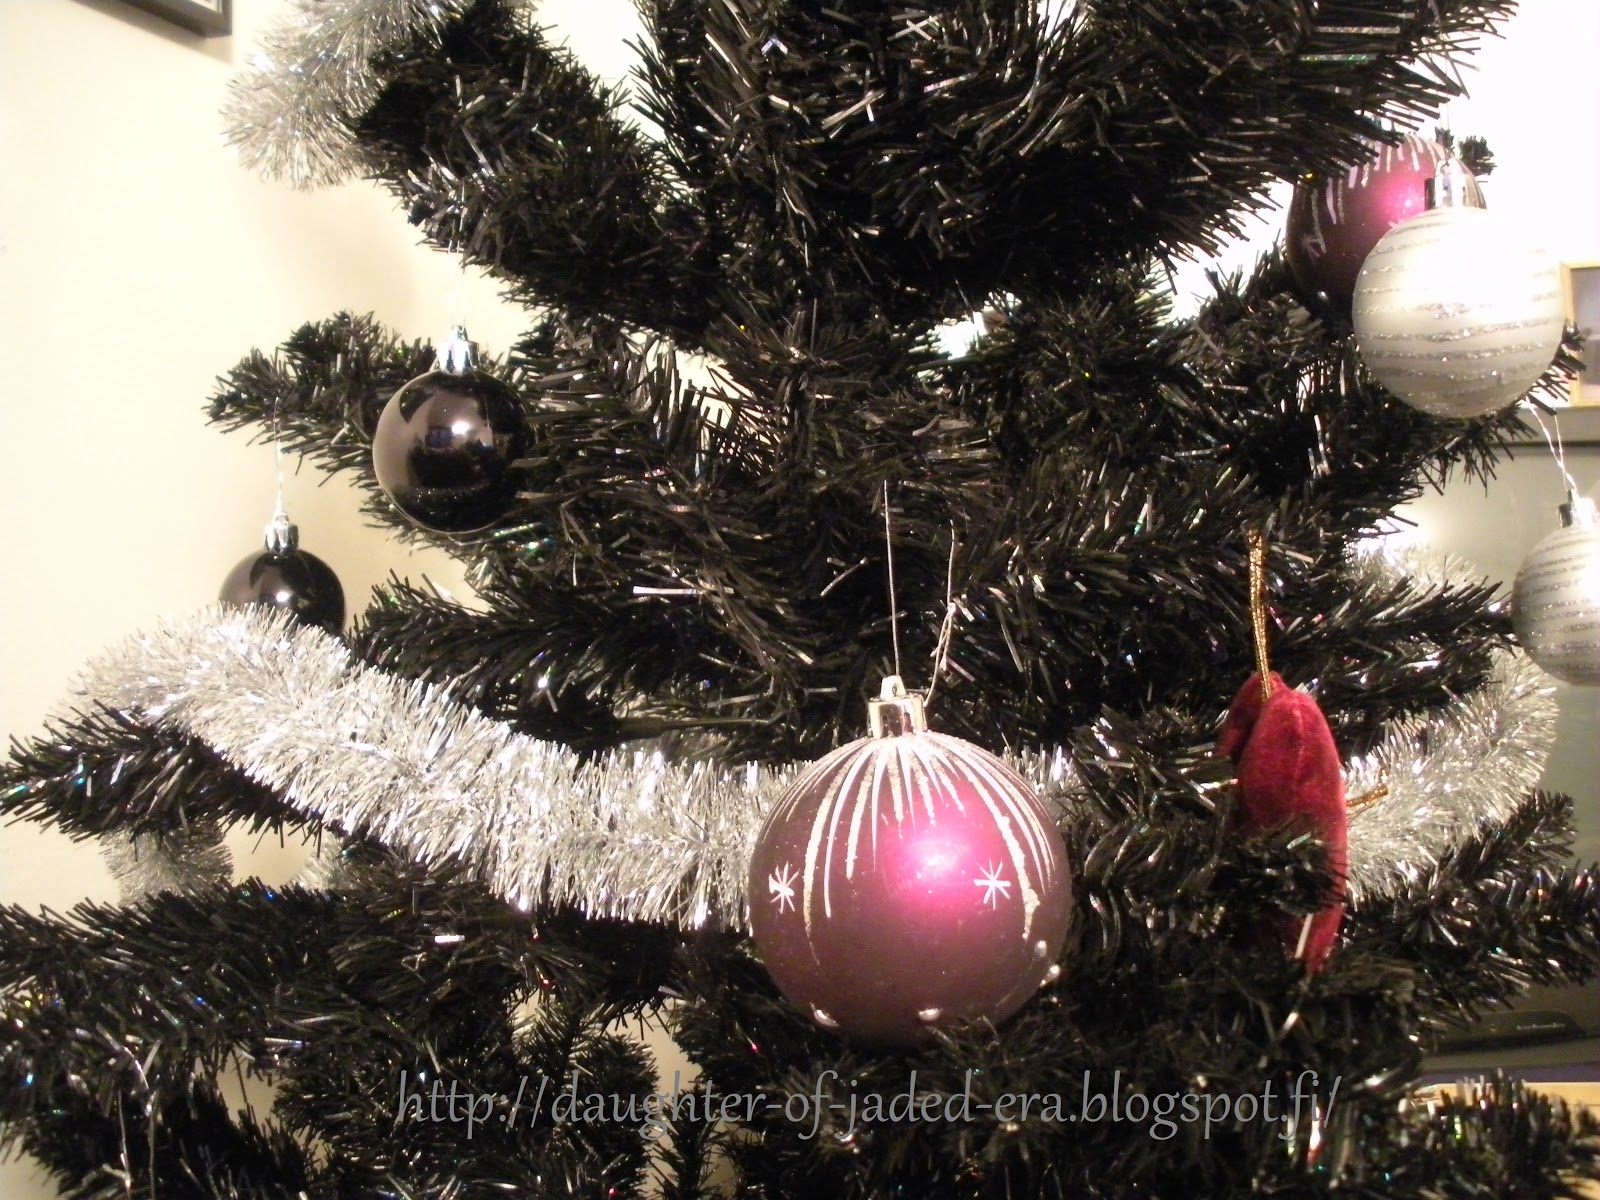 gothidays 2012 day 2 black christmas tree - Gothic Christmas Decorations